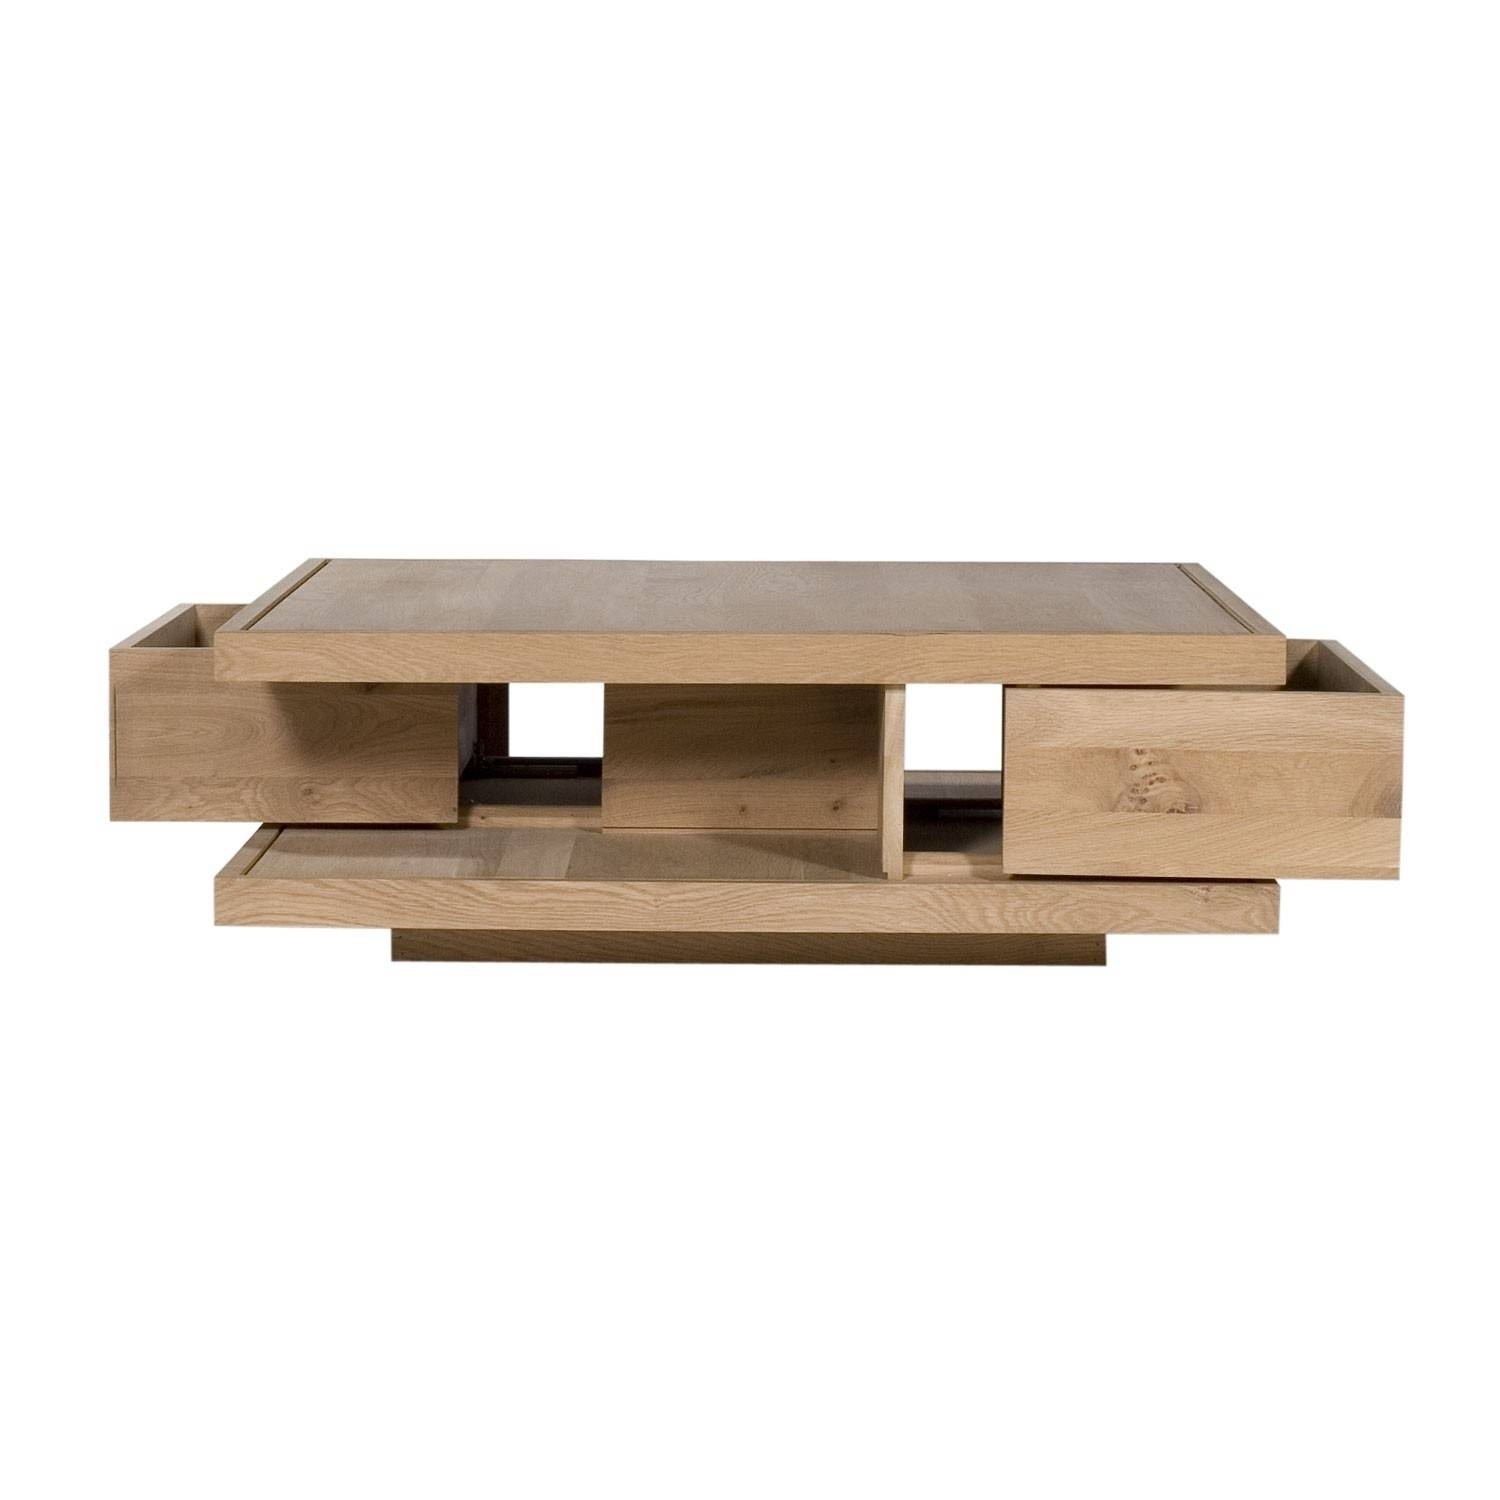 30 Collection of Oak Coffee Table Sets